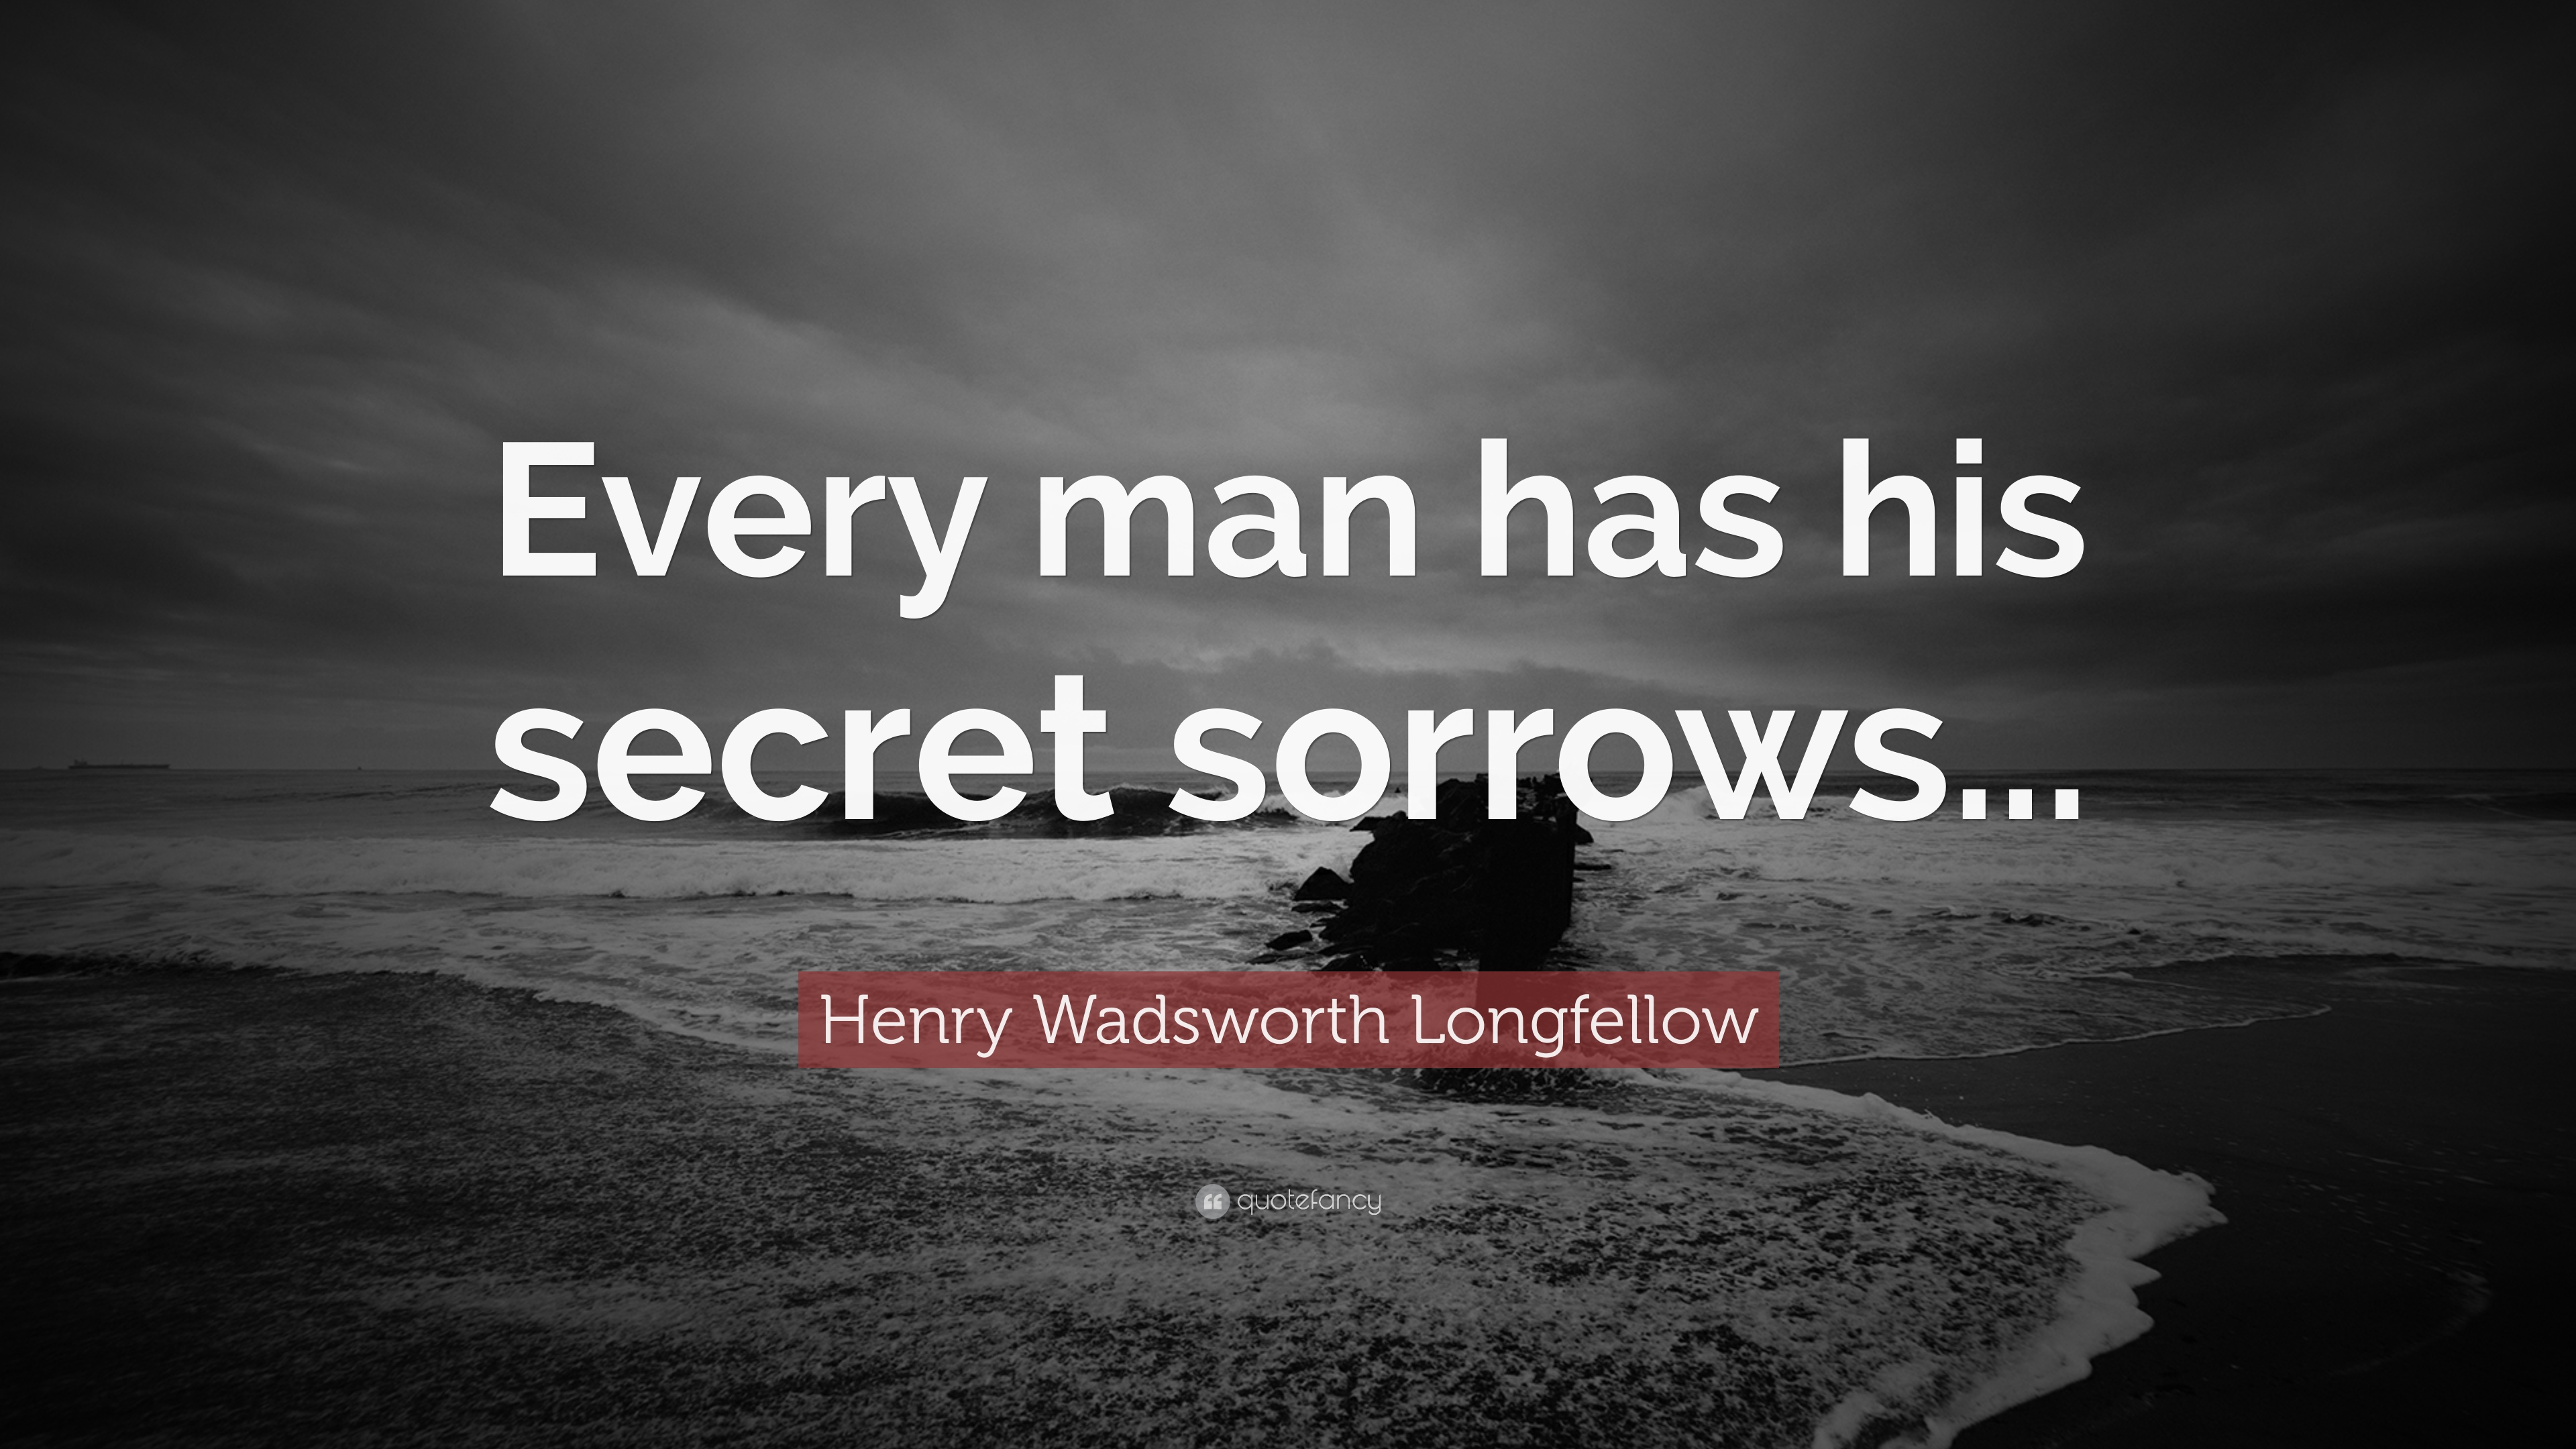 Henry Wadsworth Longfellow Quote: U201cEvery Man Has His Secret Sorrows...u201d